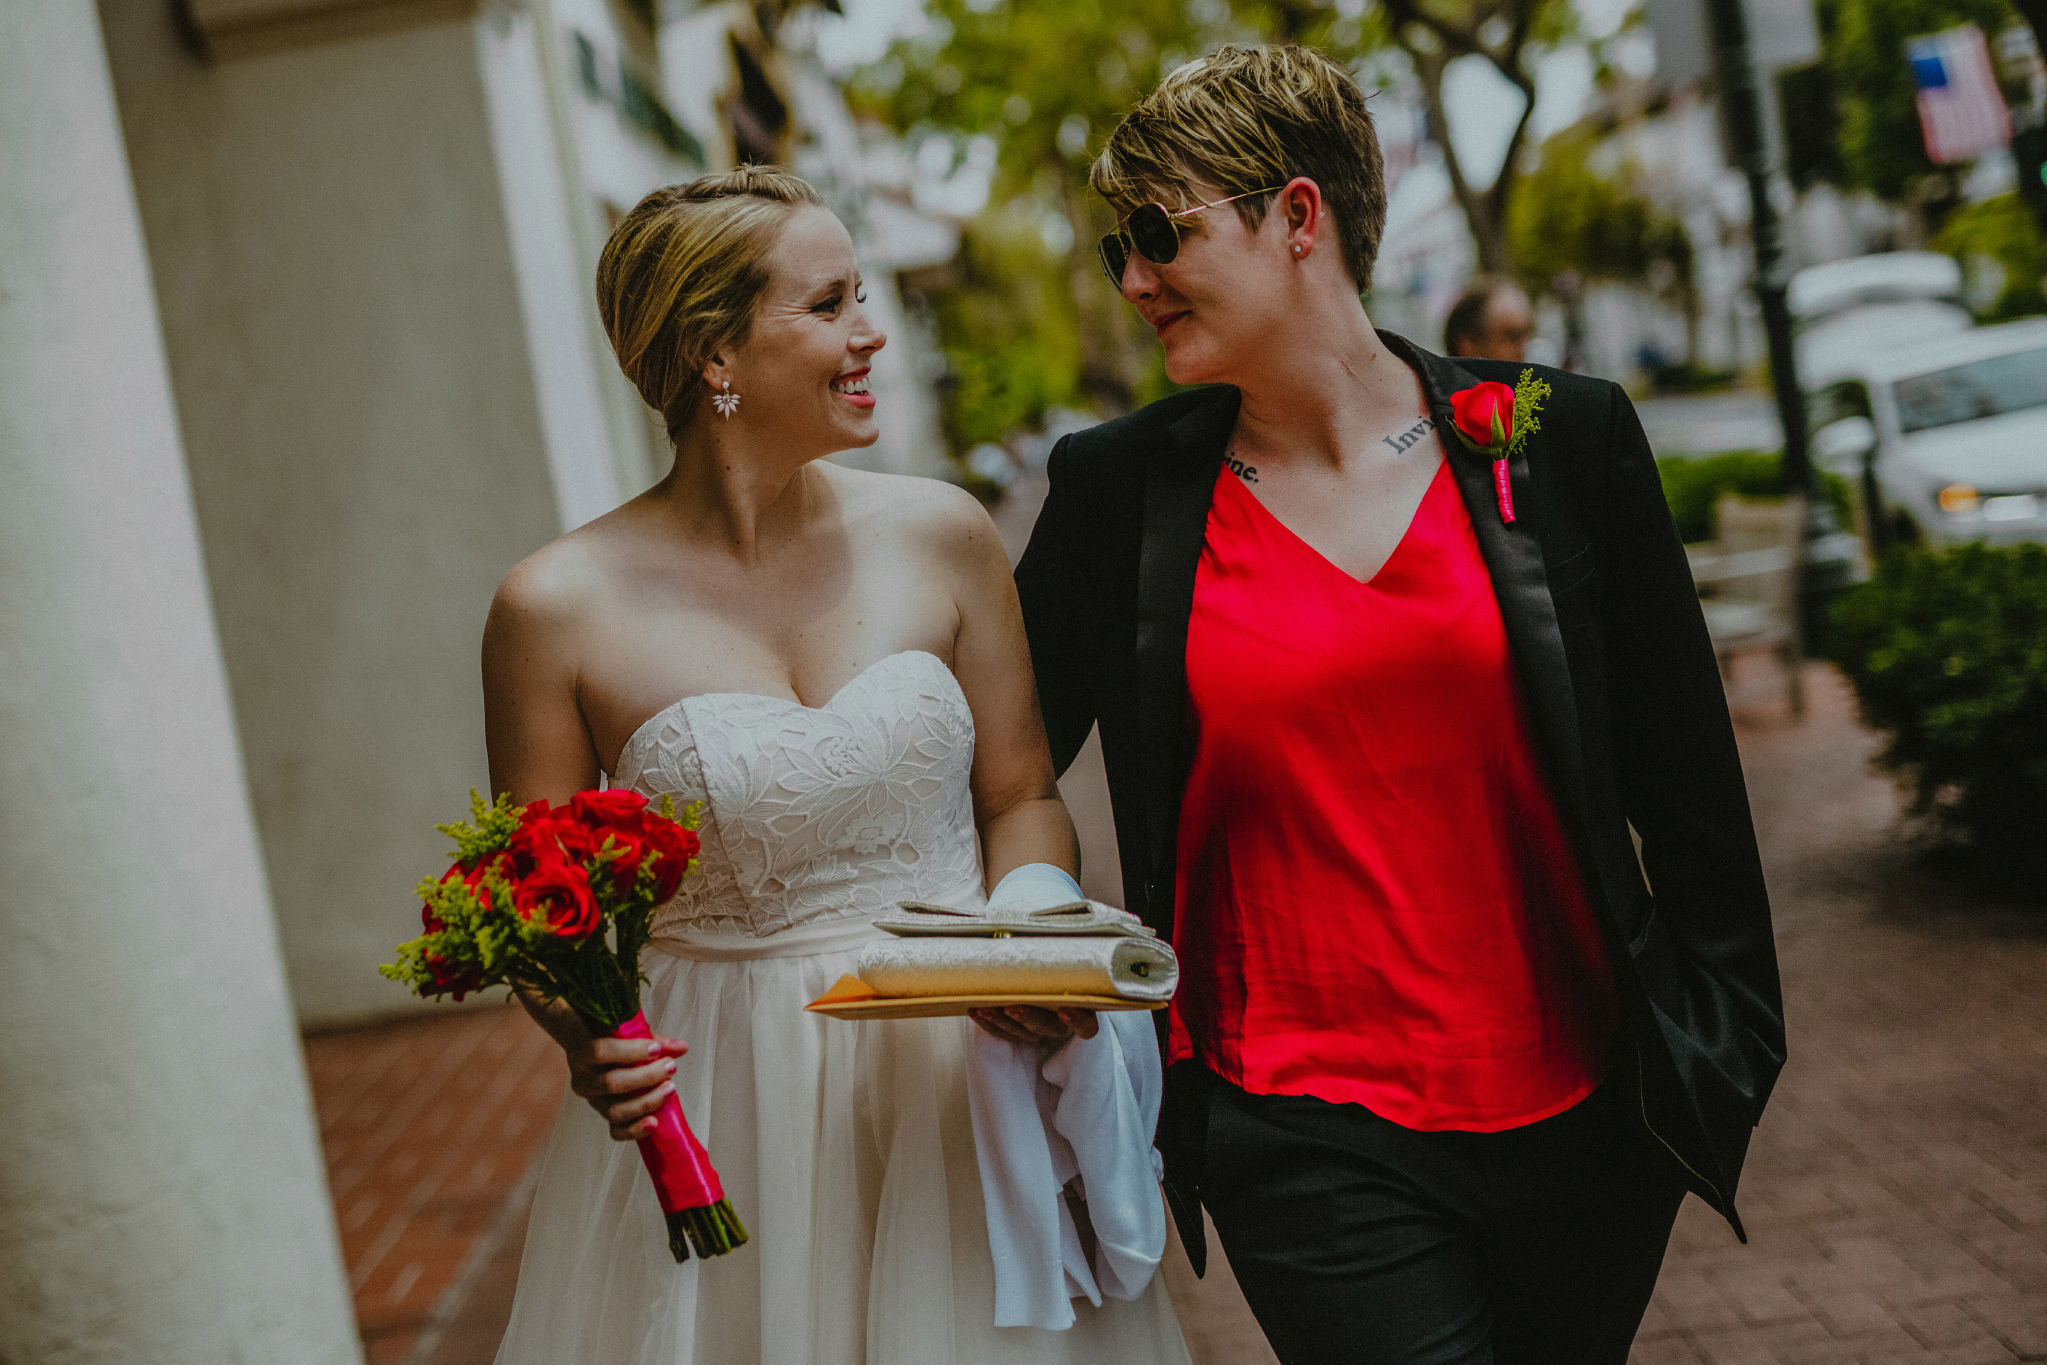 san diego wedding   photographer | woman in white holding purse smiling walking next to woman